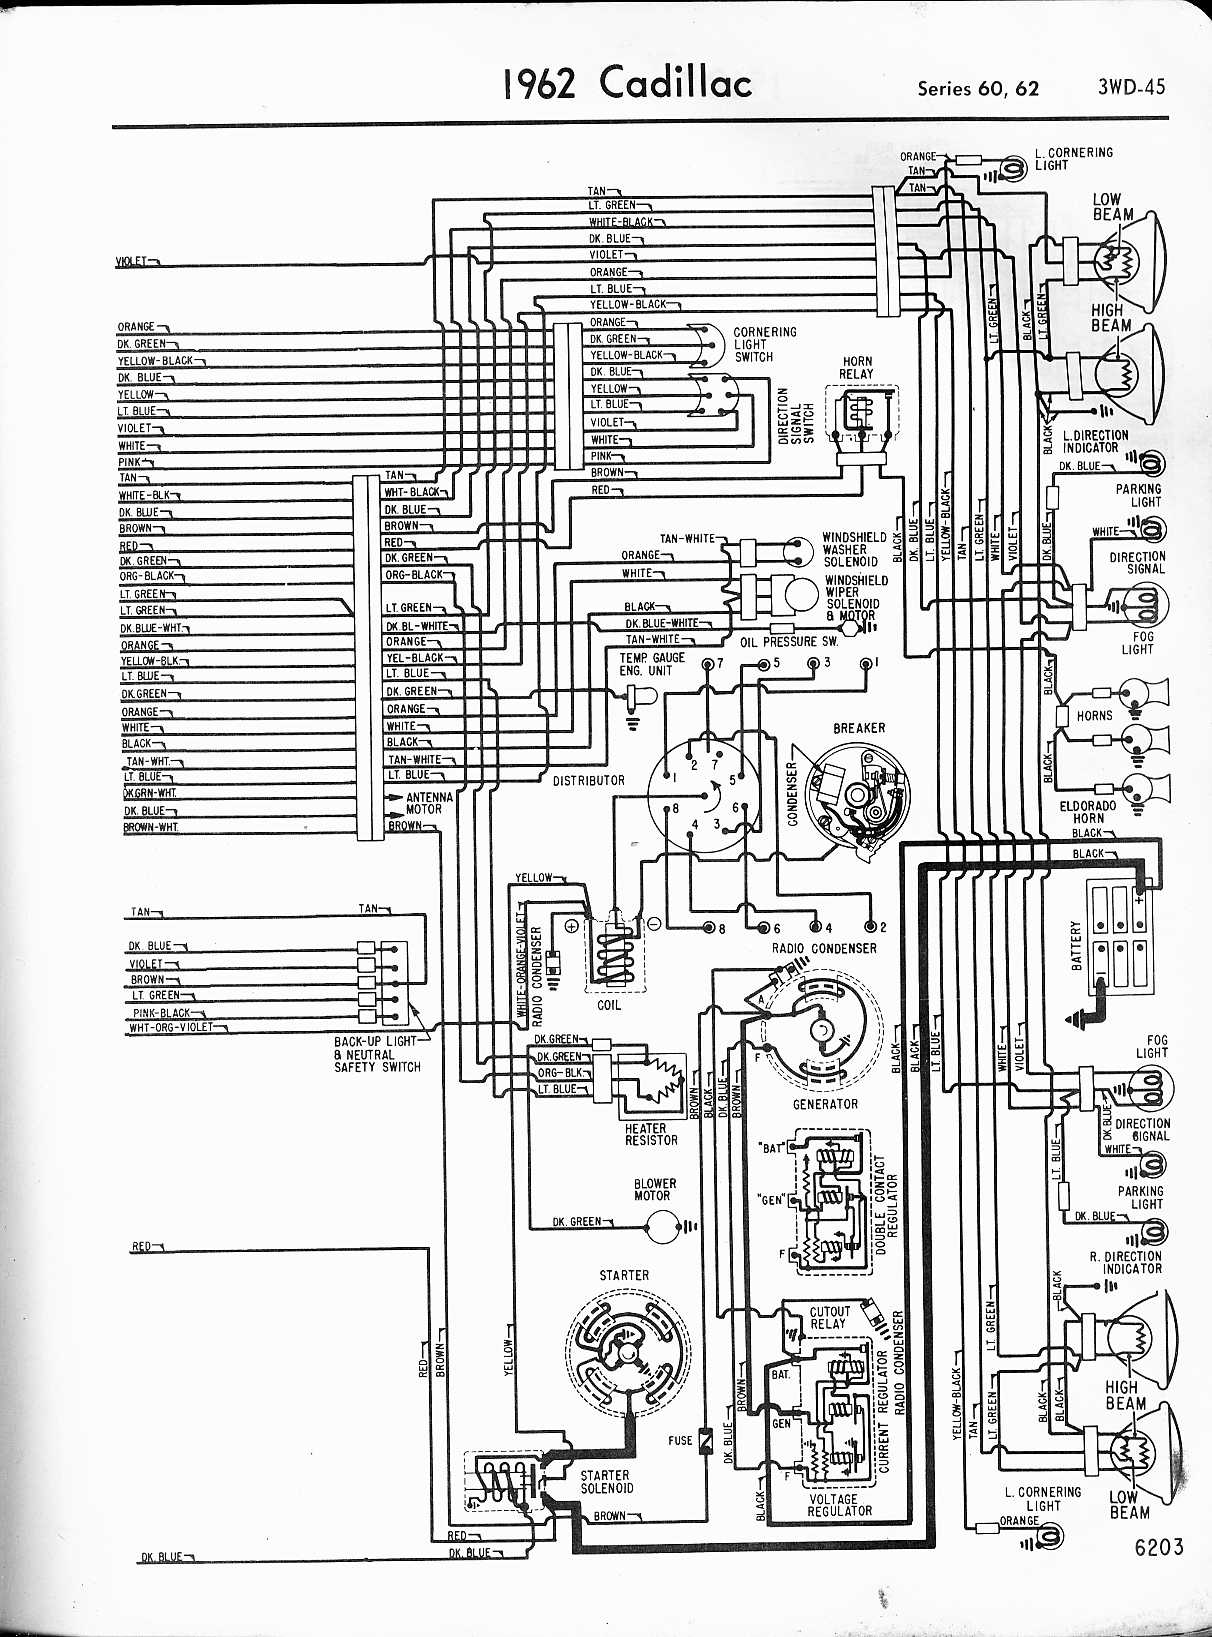 1968 mustang wiring diagram for light cadillac wiring diagrams: 1957-1965